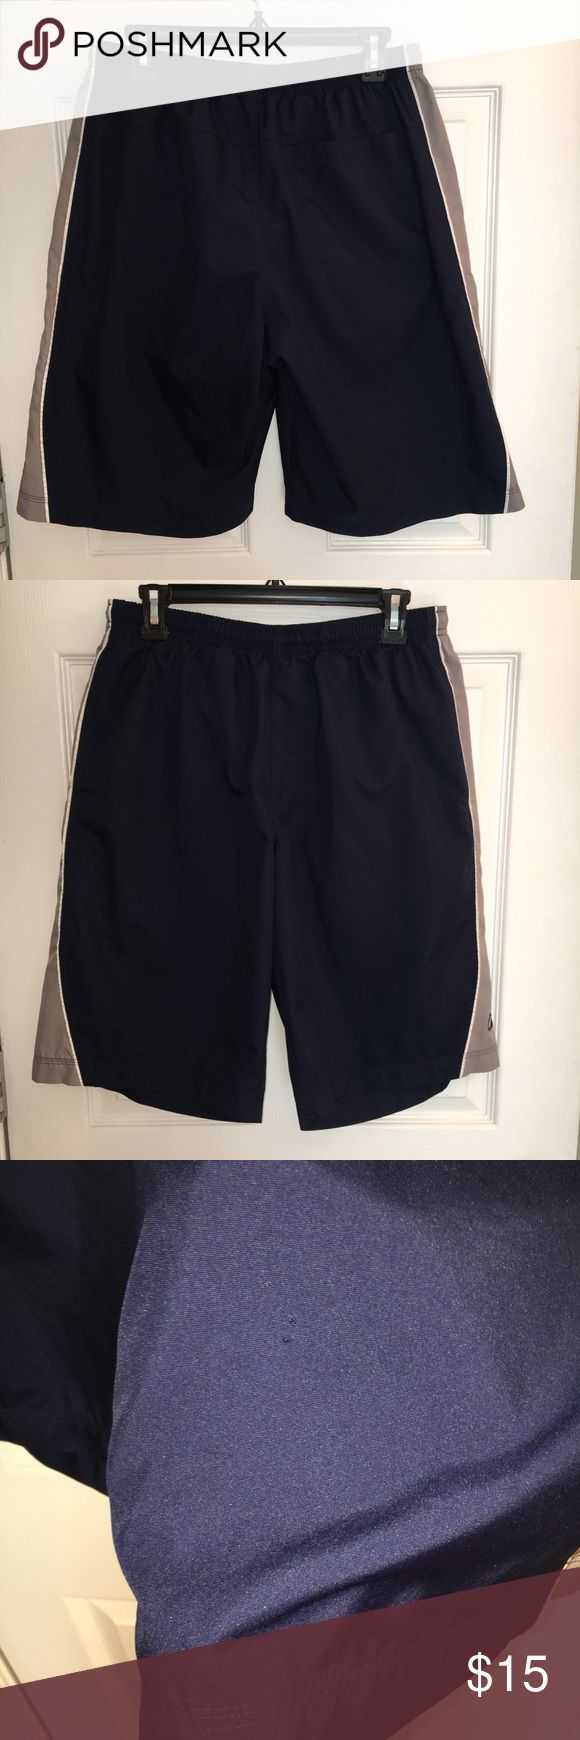 Men's navy & grey Nike swim shorts with liner Men's navy & grey Nike swim shorts with liner. Size large. Tiny tear as shown in image #3. Other than that, shirts are in great condition! Nike Shorts Athletic